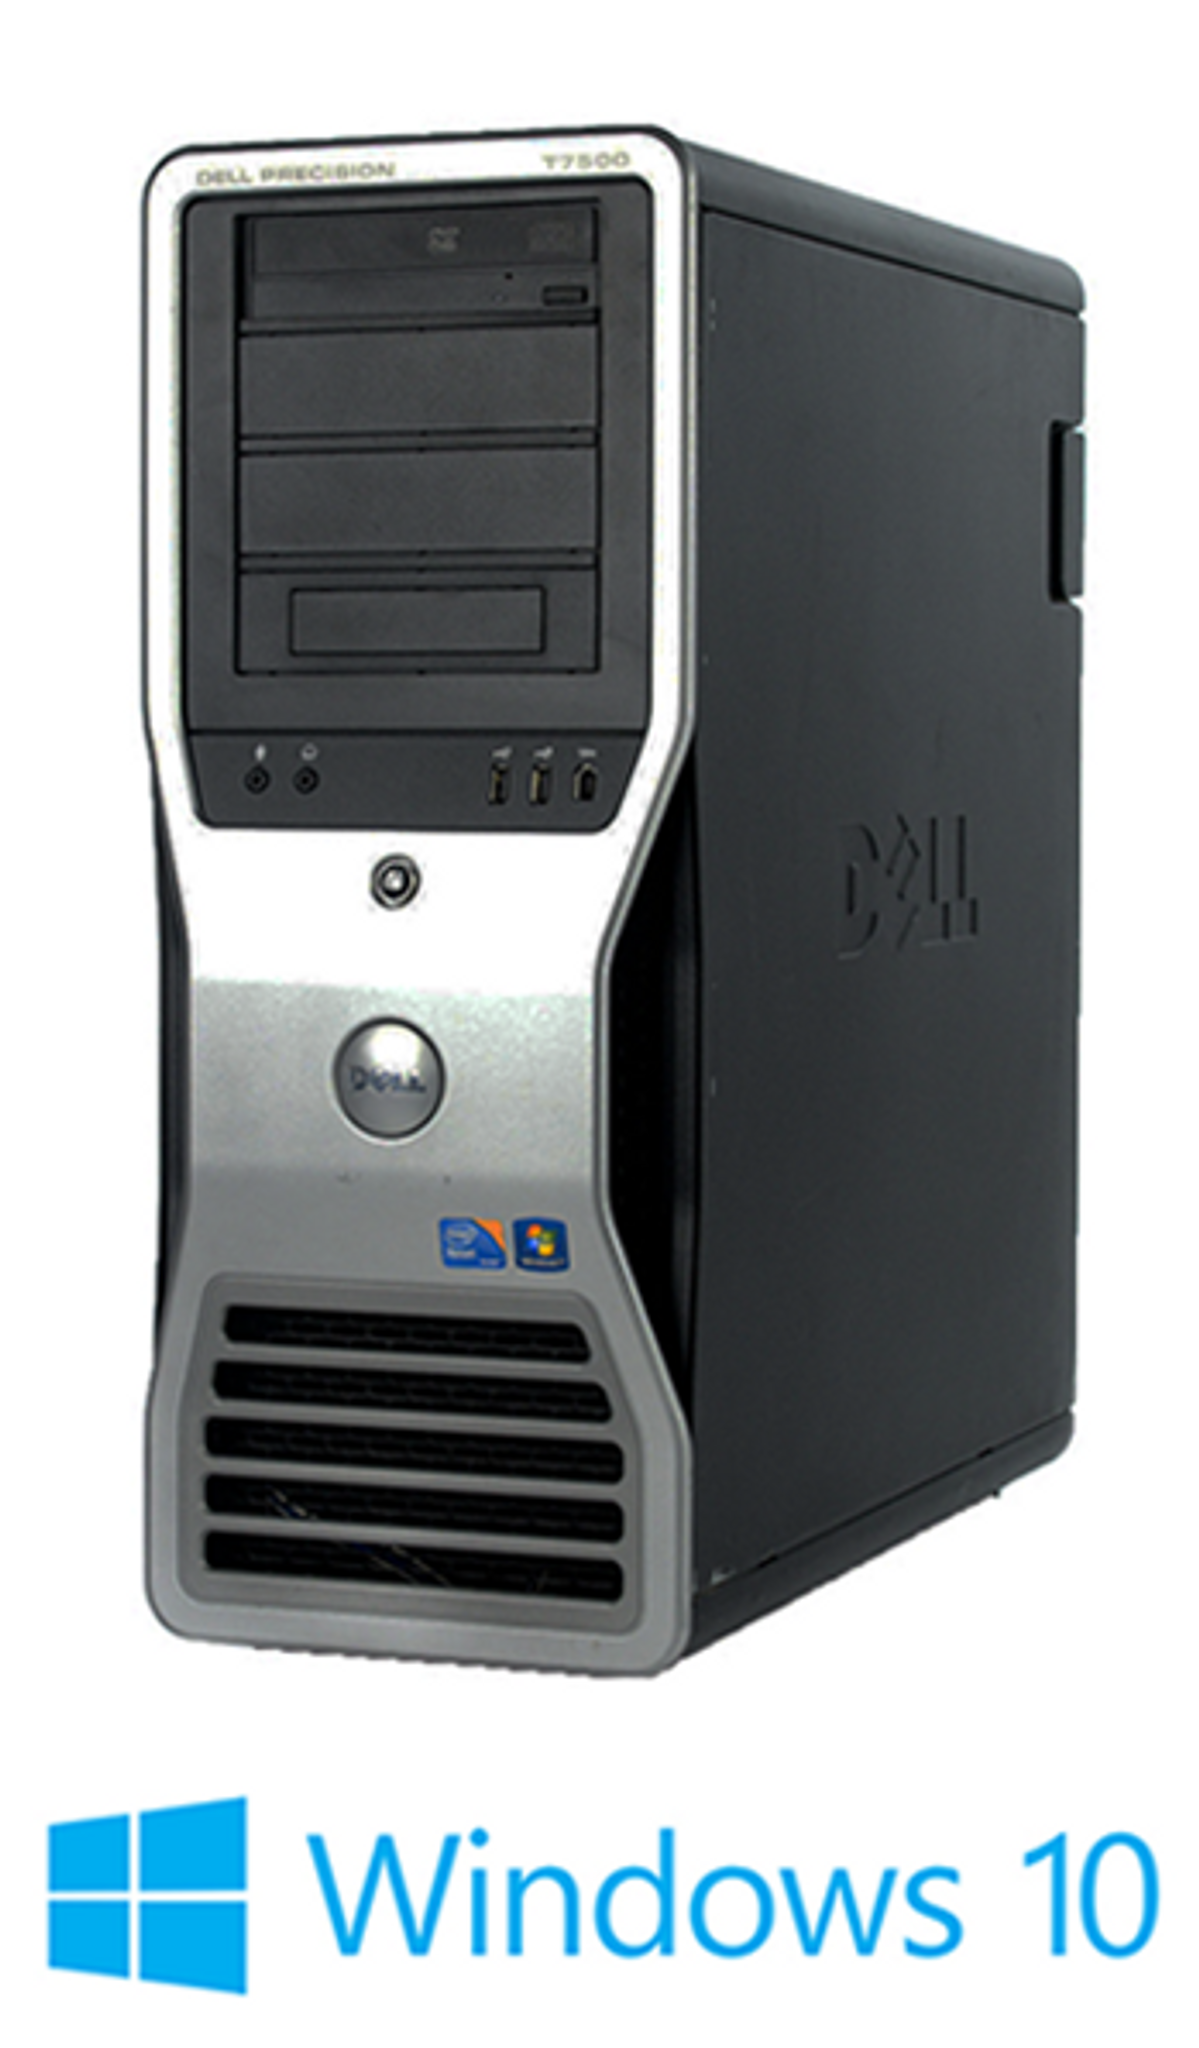 DELL T7400 DRIVERS FOR WINDOWS 8